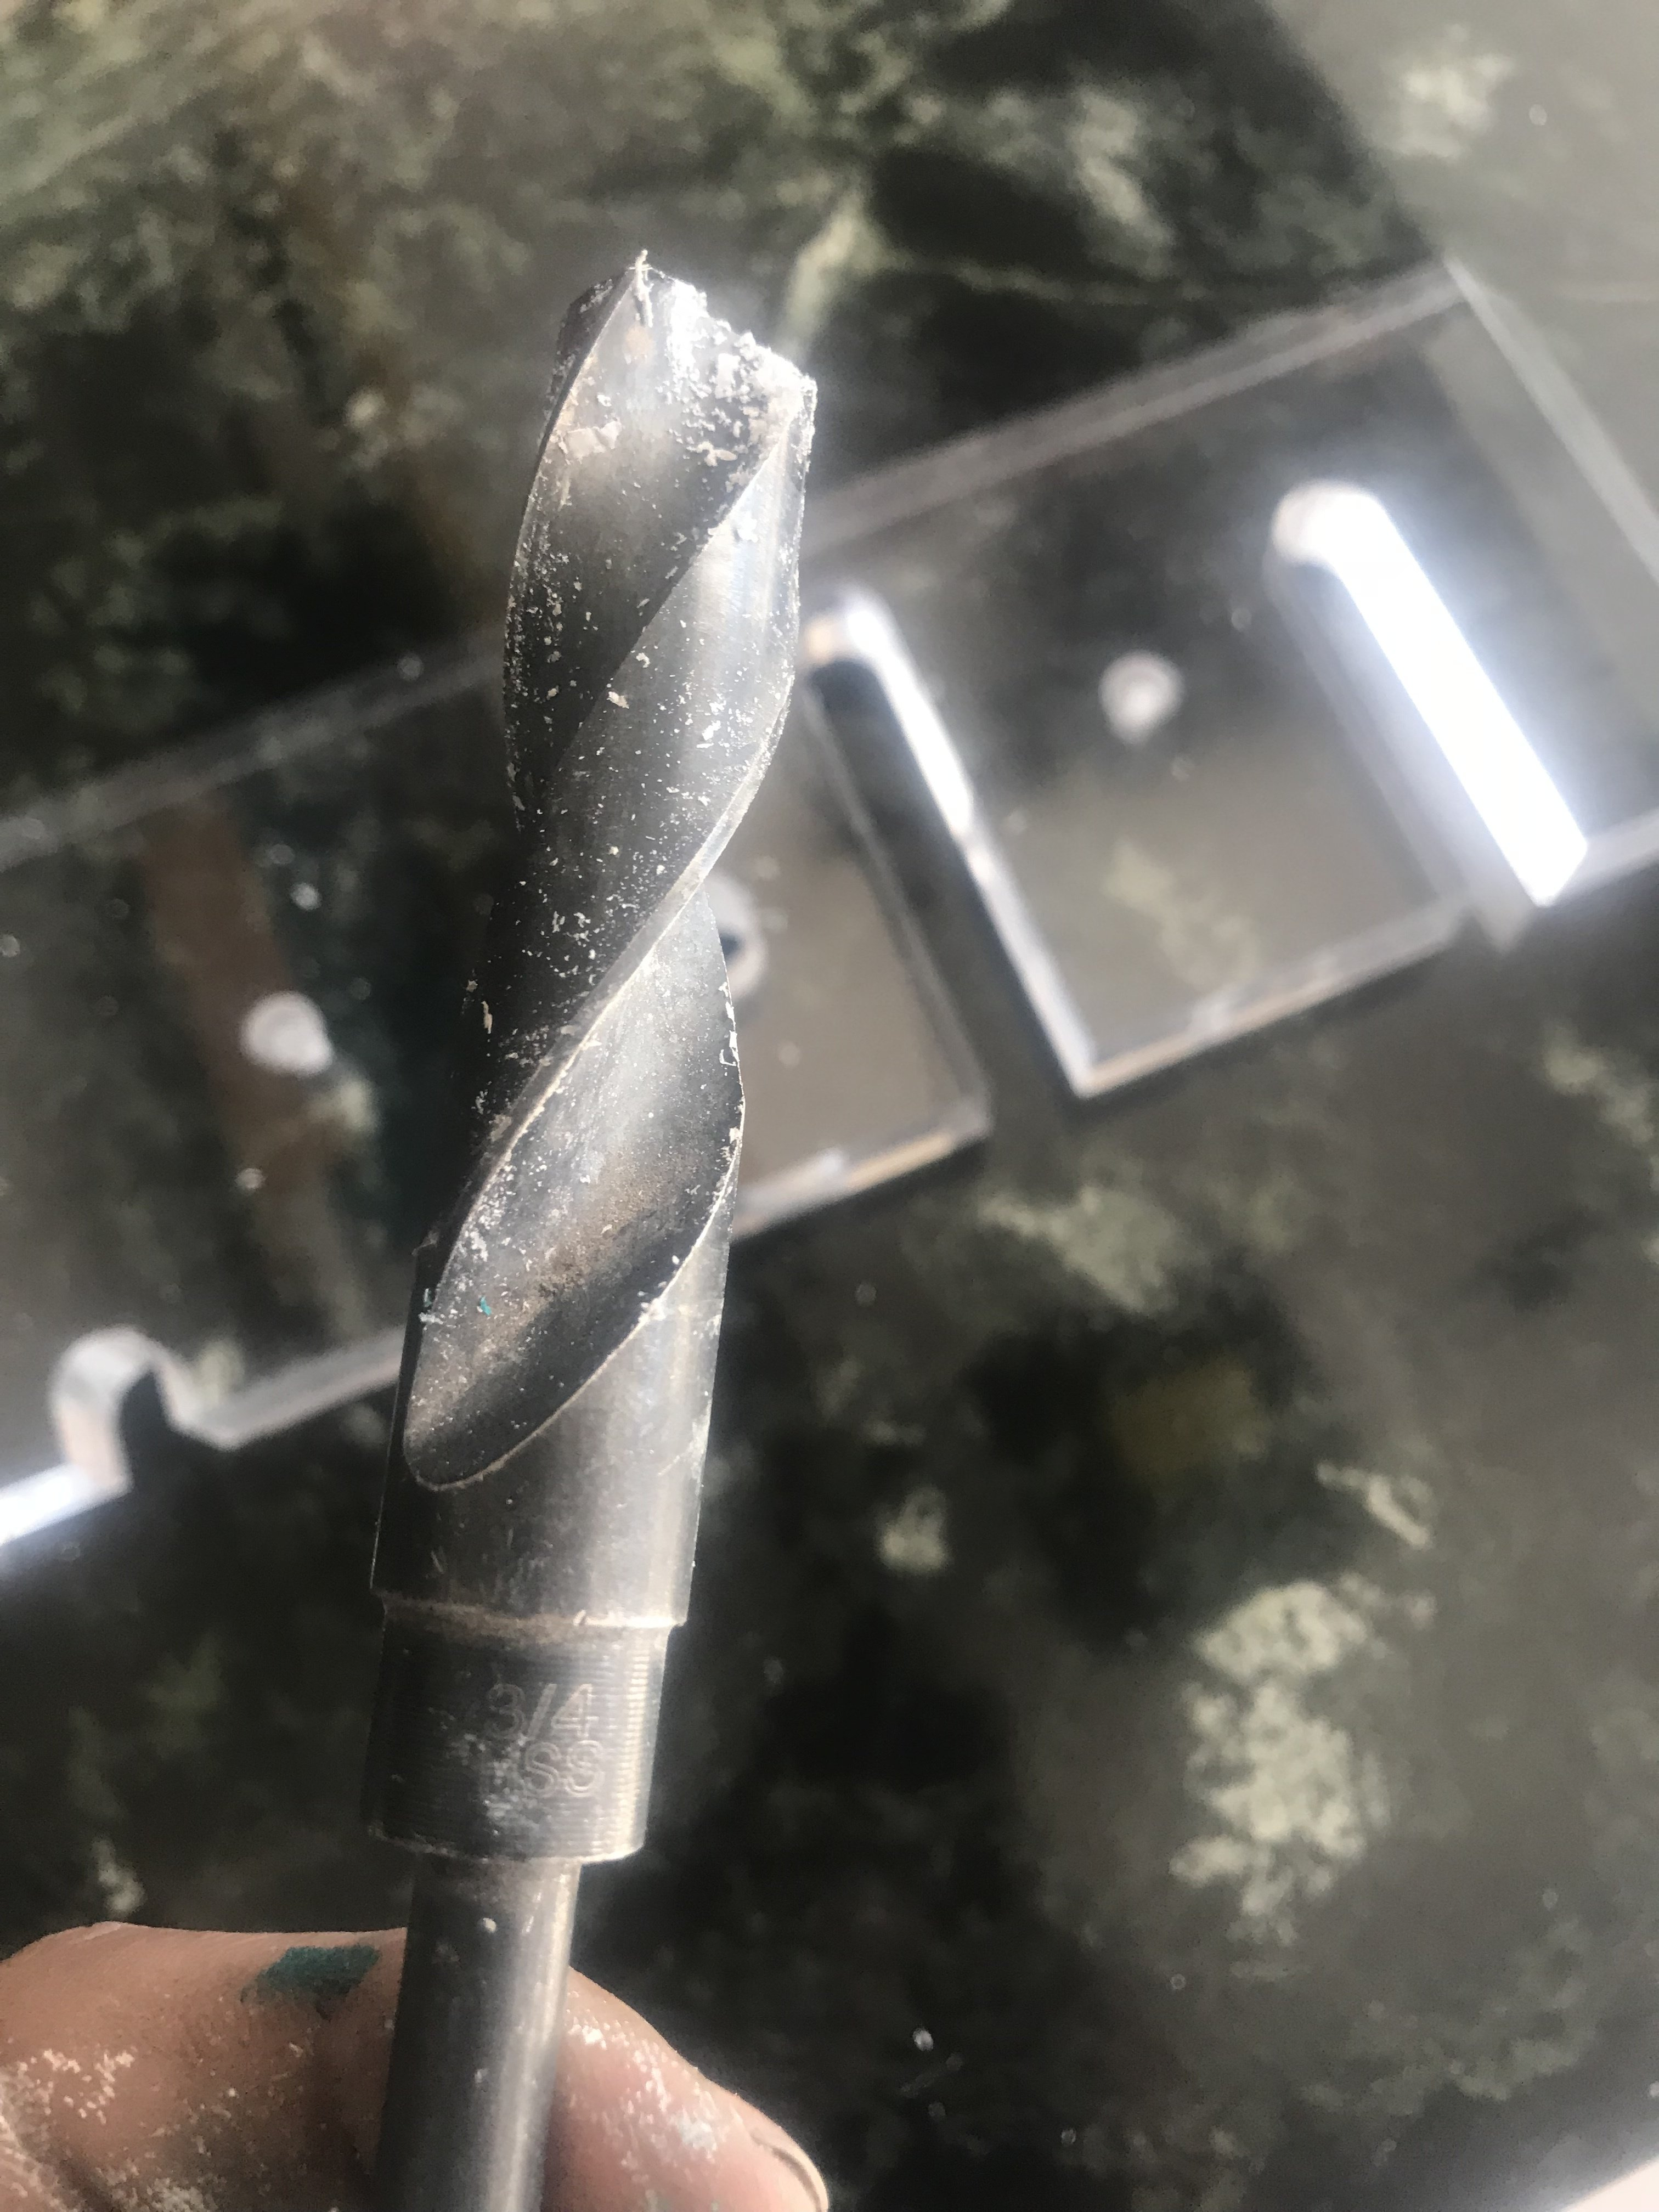 How To Drill Holes In Plexiglass Without Cracking It Quora